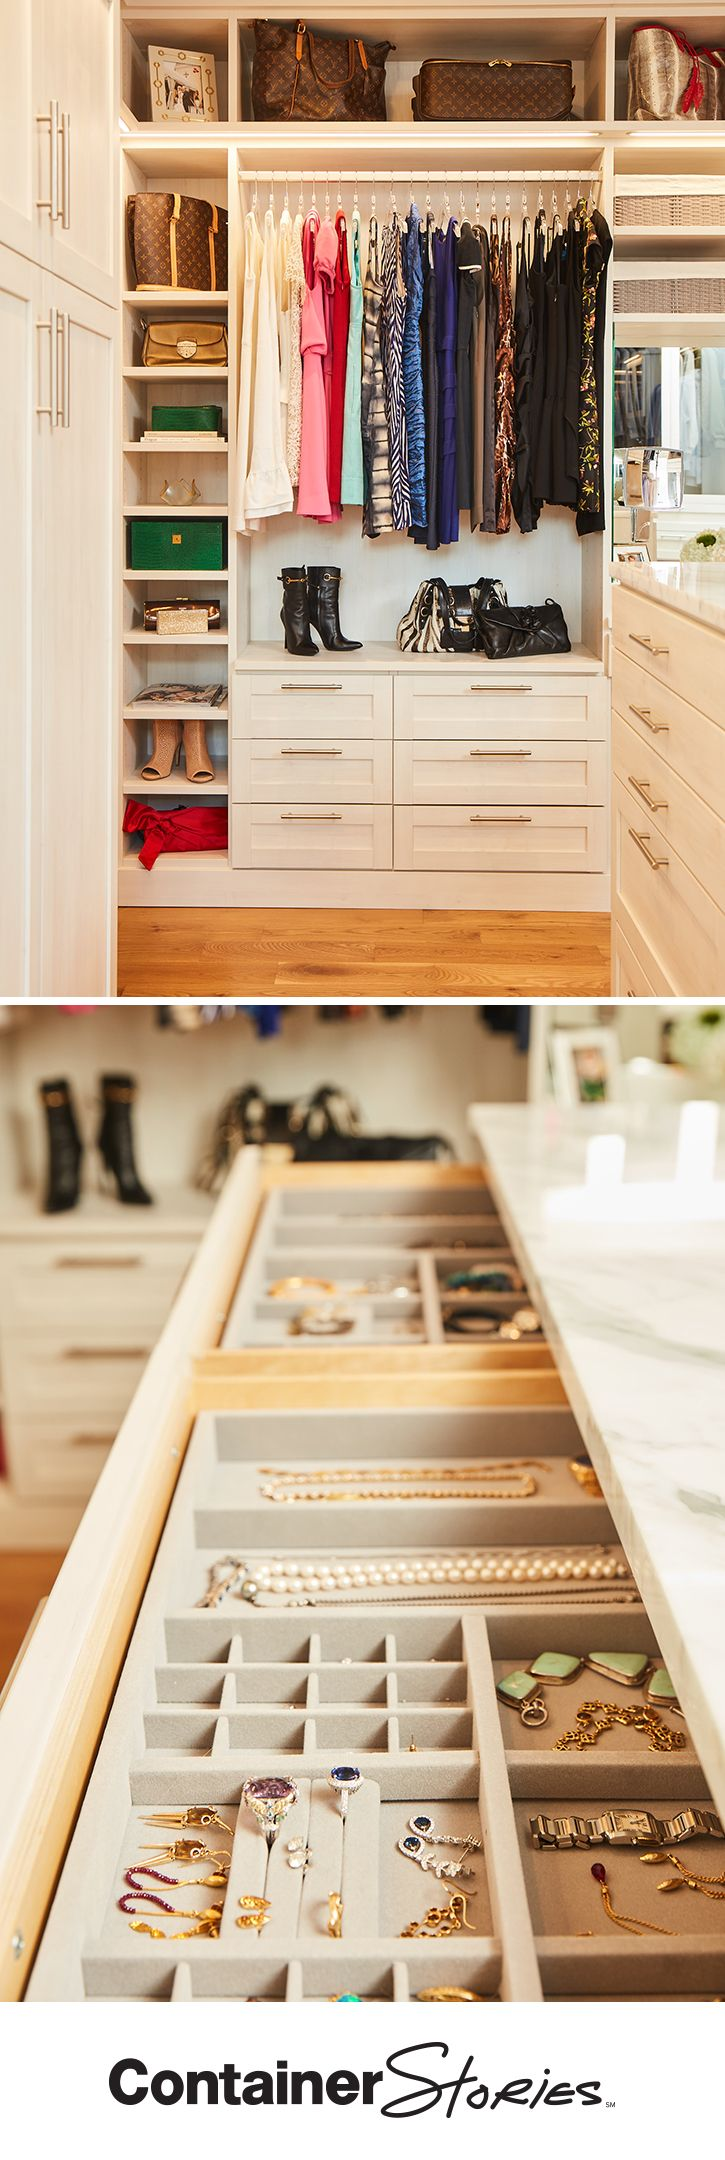 A master laren closet designed and styled by a master